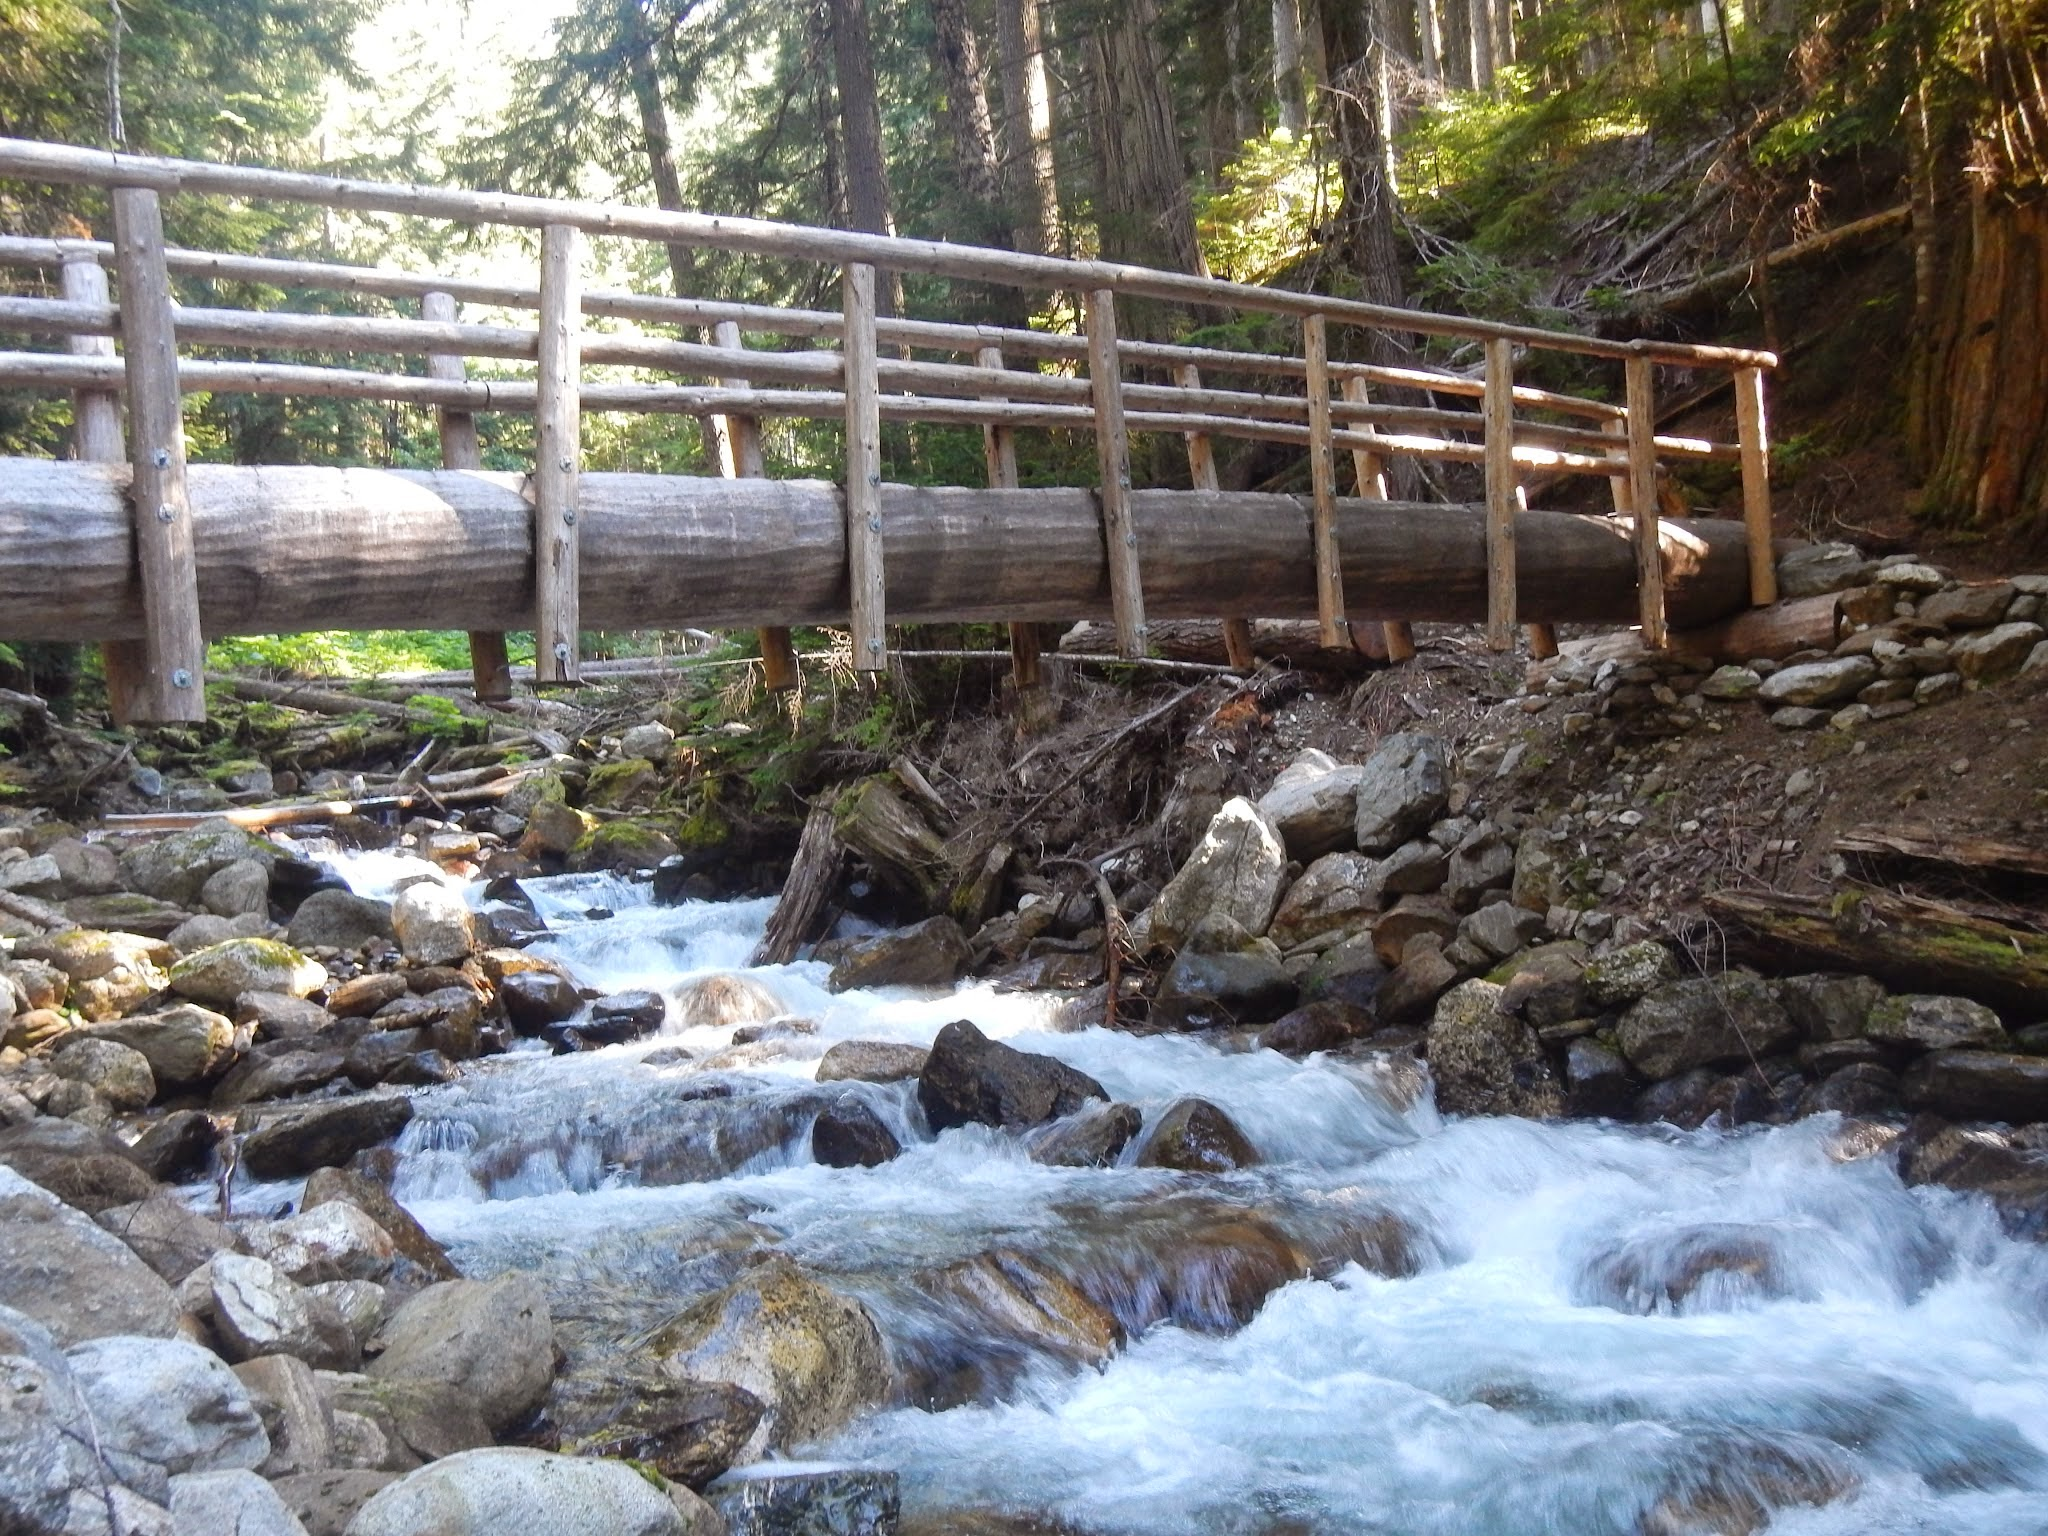 Photo: Another bridge over another stream